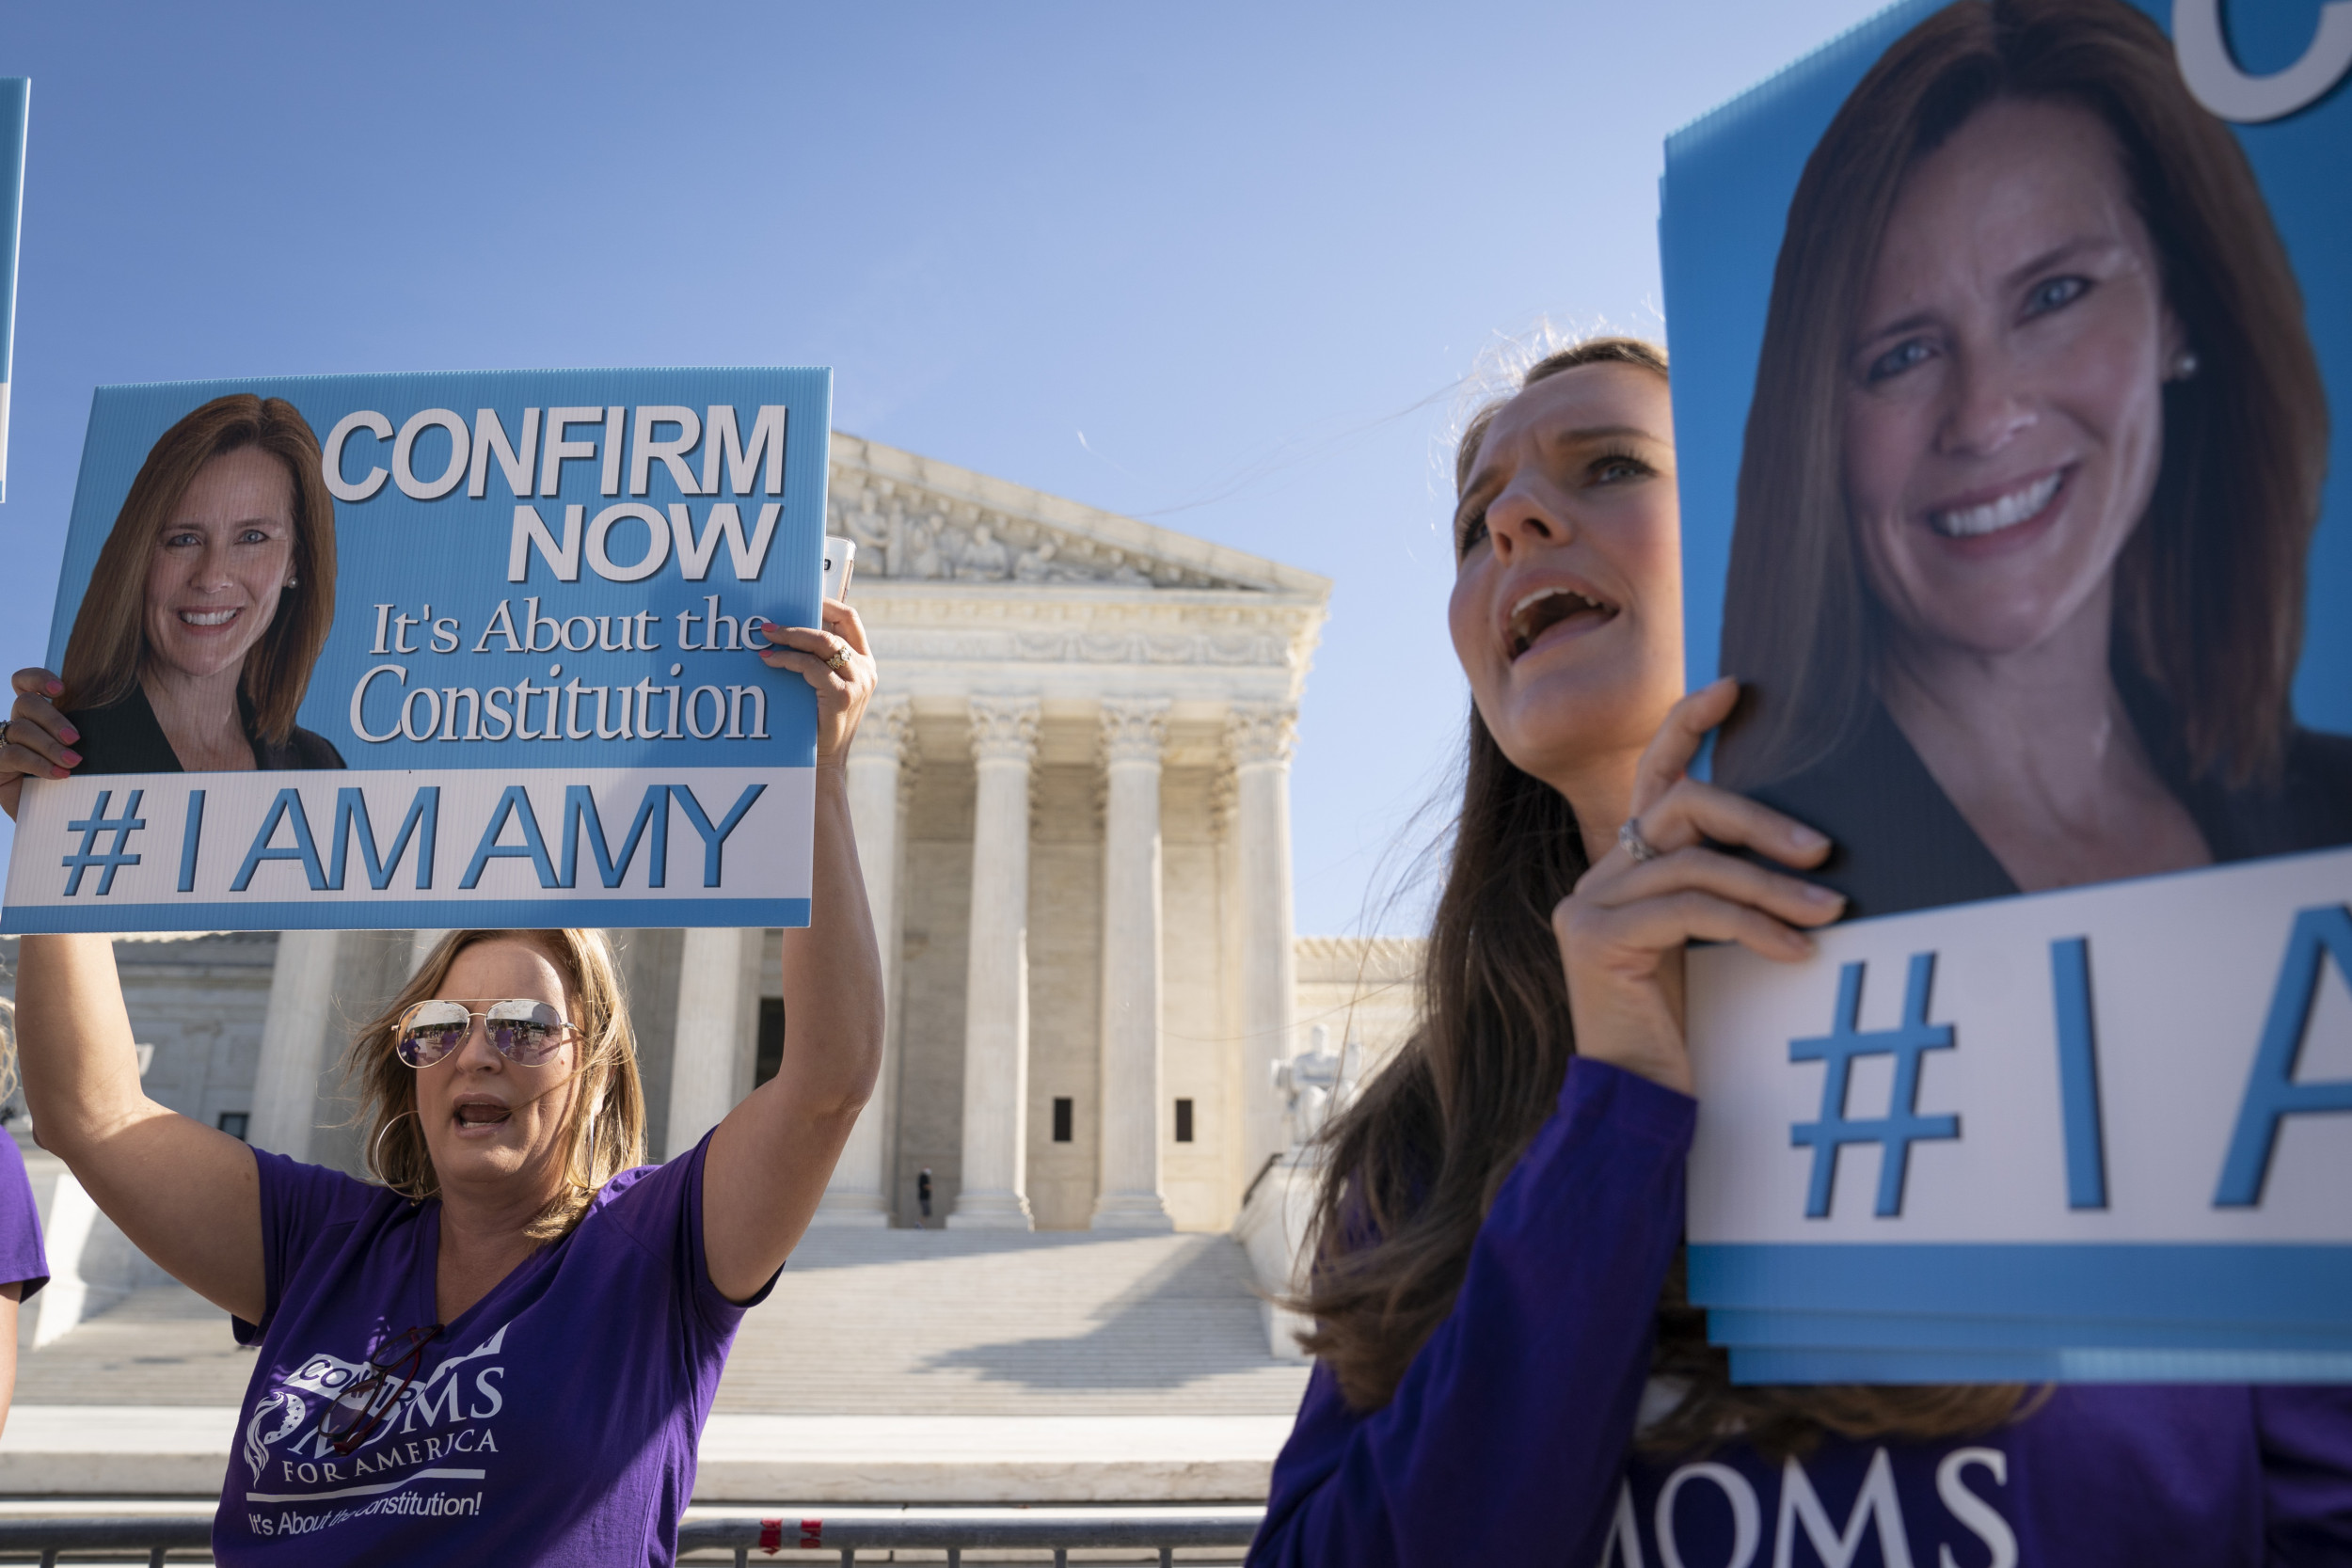 Democratic Support for Amy Coney Barrett Rises Nearly 20 Percent Since Her Nomination thumbnail